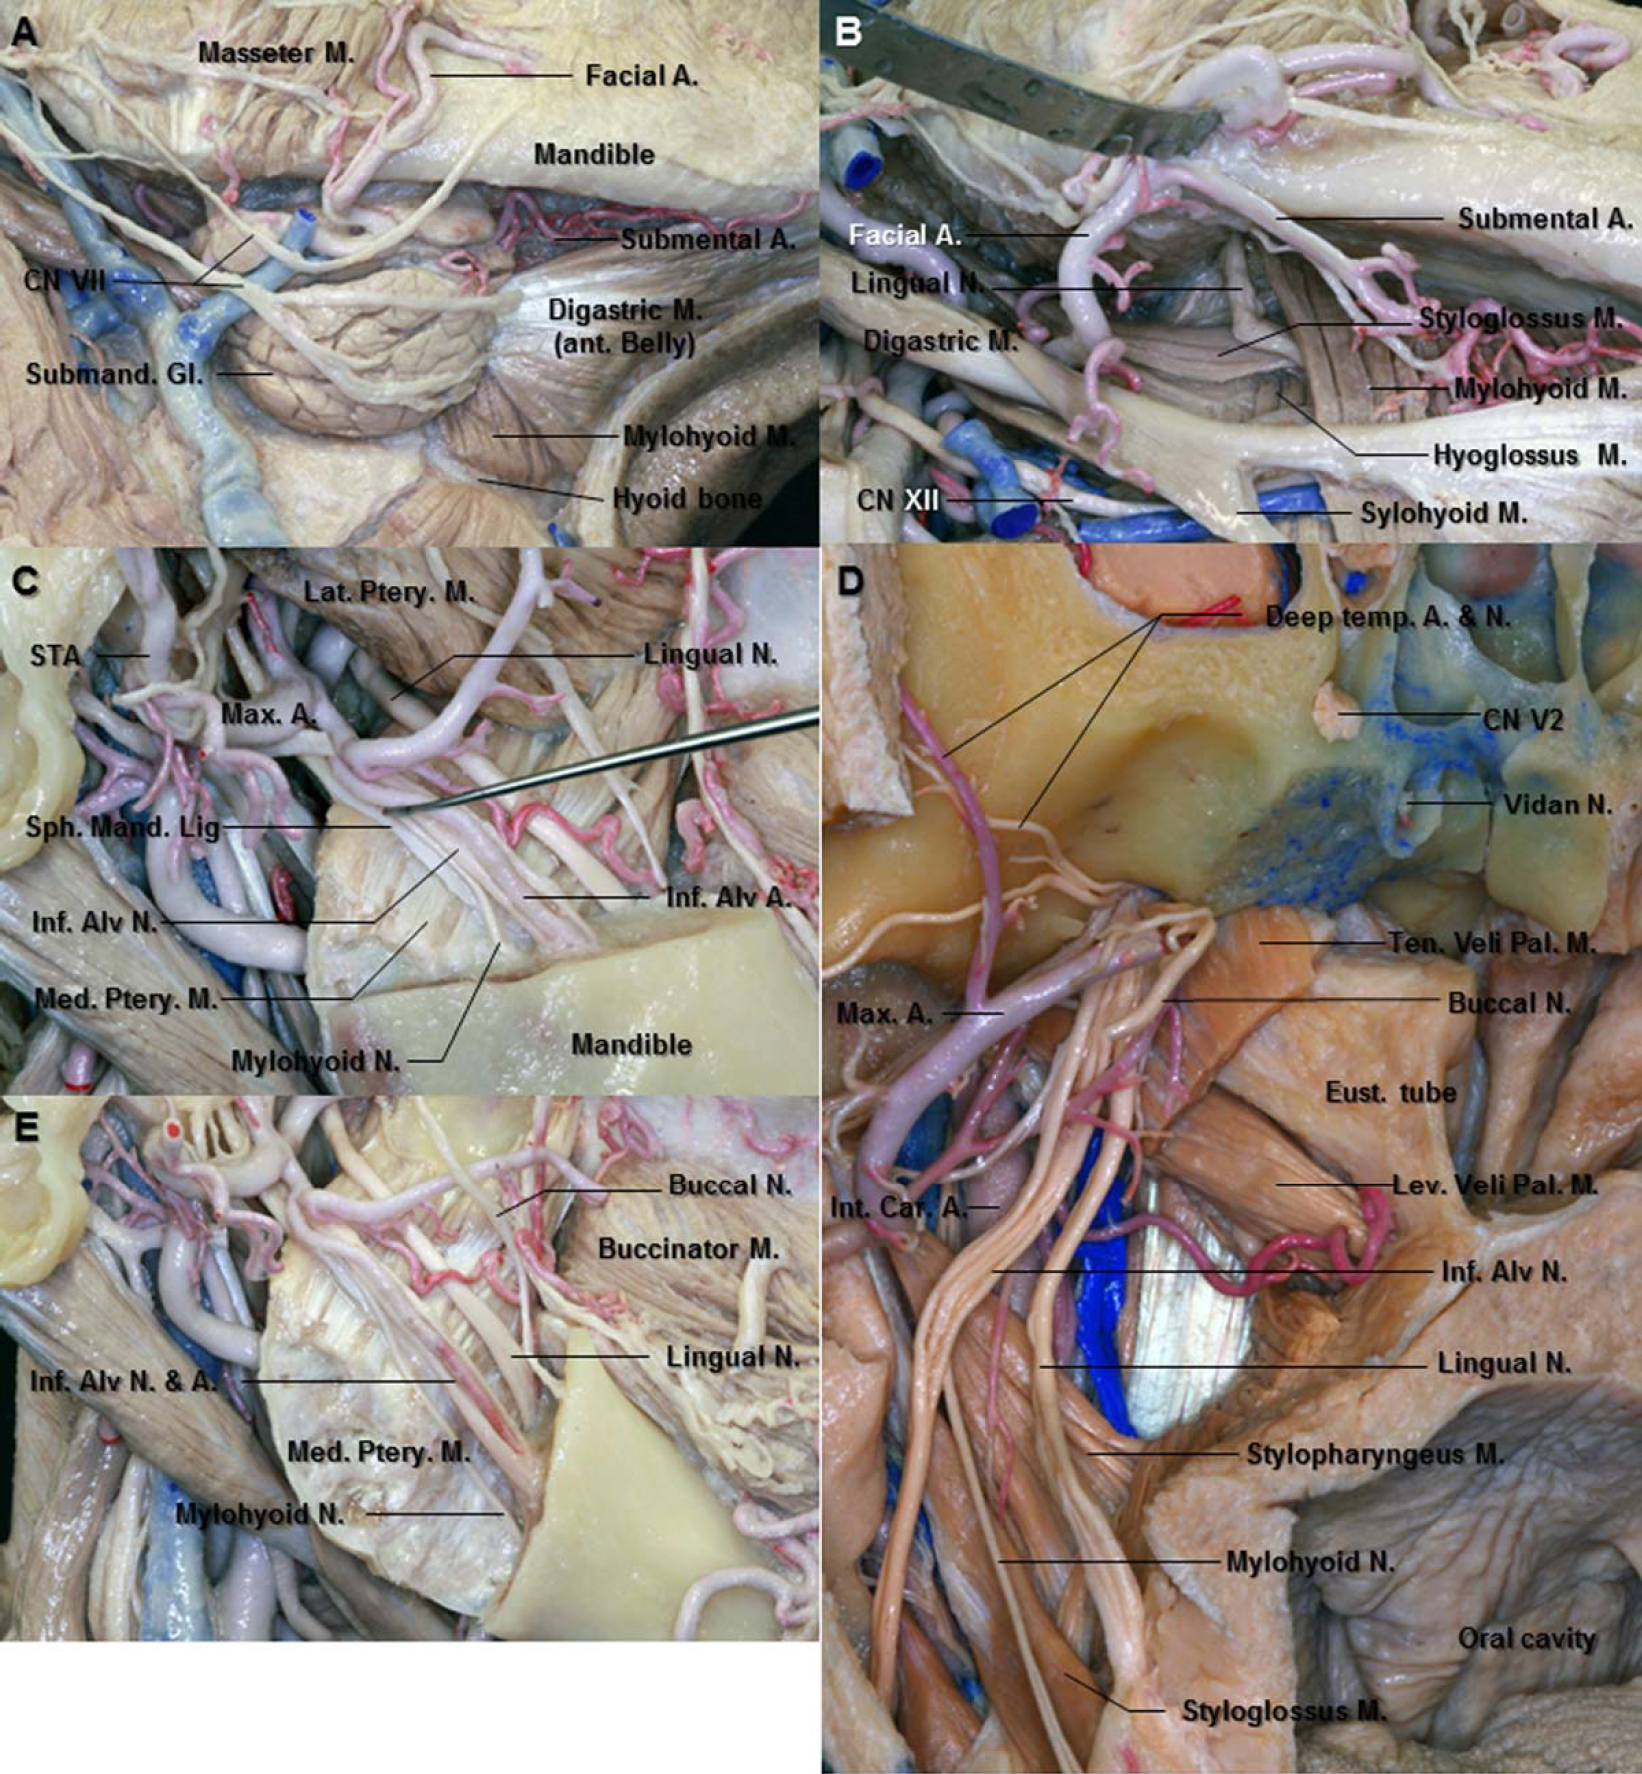 Figure 13. A. Inferolateral view of the right submandibular area. The facial nerves run over the submandibular gland which lie on the digastric tendon. B. Enlarged view of the right submandibular triangle. The submandibular gland has been removed to expose the contents of the submandibular triangle. After passing between the mandibular ramus and the medial pterygoid muscle, the lingual nerve crosses the styloglossus muscle and runs between the hyoglossus and mylohyoid muscles above the deep part of the submandibular gland. C. Lateral view of the right infratemporal fossa. The lingual nerve courses down and forward between the mandibular ramus (removed) and medial pterygoid muscle, lying anterior and slightly deep to the inferior alveolar nerve. The sphenomandibular ligament is a flat, thin band descending from the sphenoidal spine and widening to reach the lingual of the mandibular foramen. D. Anterior view of the right infratemporal fossa. The lingual nerve is anterior and medial to the inferior alveolar nerve. The inferior alveolar nerve gives rise to the mylohyoid nerve before it enters the mandibular foramen. It then emerges in the submandibular triangle and supplies both mylohyoid and anterior belly of the digastric muscles. E. The angle of mandible has been removed. The mylohyoid nerve runs down and forward between the mandible and the medial pterygoid muscle and lodges in the mylohyoid groove. The buccal nerve emerges from the undersurface of the ramus of the mandible. Abbreviations: A., artery; Alv., alveolar; Ant., anterior; Car., carotid; CN., cranial nerve; Eust., Eustachian; Gl., gland; Inf., inferior; Int., internal; Lat., lateral; Lev. Vel. Pal. M., levator veli palatini muscle; M., muscle; Max., maxillary; Med., medial; N., nerve; Ptery., pterygoid; Sph. Mand. Lig., sphenomandibular ligament; STA., superficial temporal artery; Temp., temporal; Ten. Vel. Pal. M., tensor veli palatini muscle. (Images courtesy of AL Rhoton, Jr.)